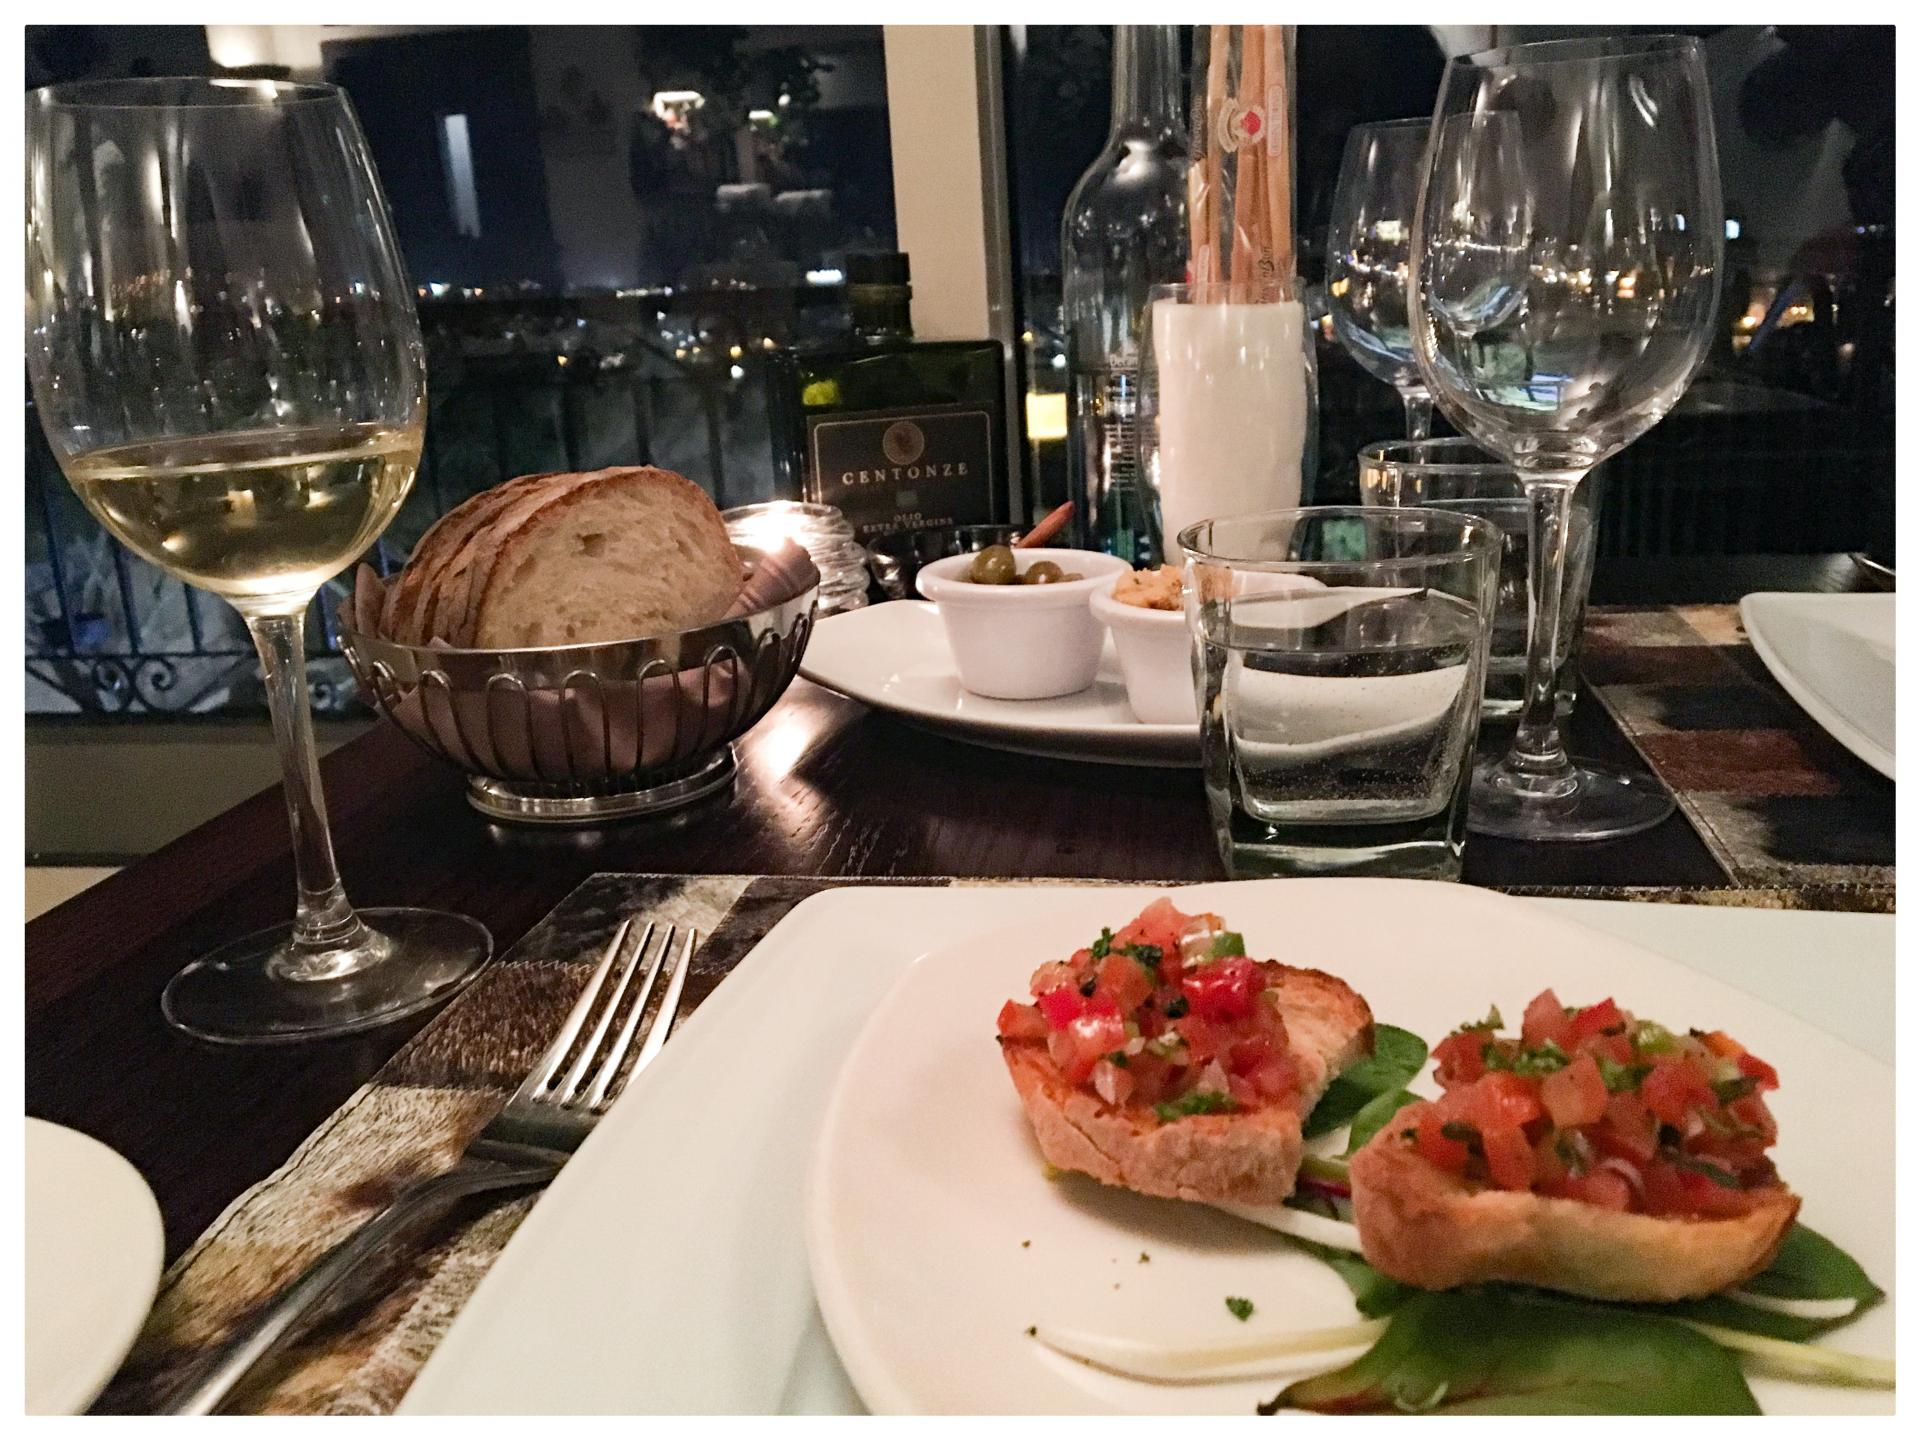 5 best places to eat and drink in Malta, including Giannini, Valetta. www.kittyandb.com